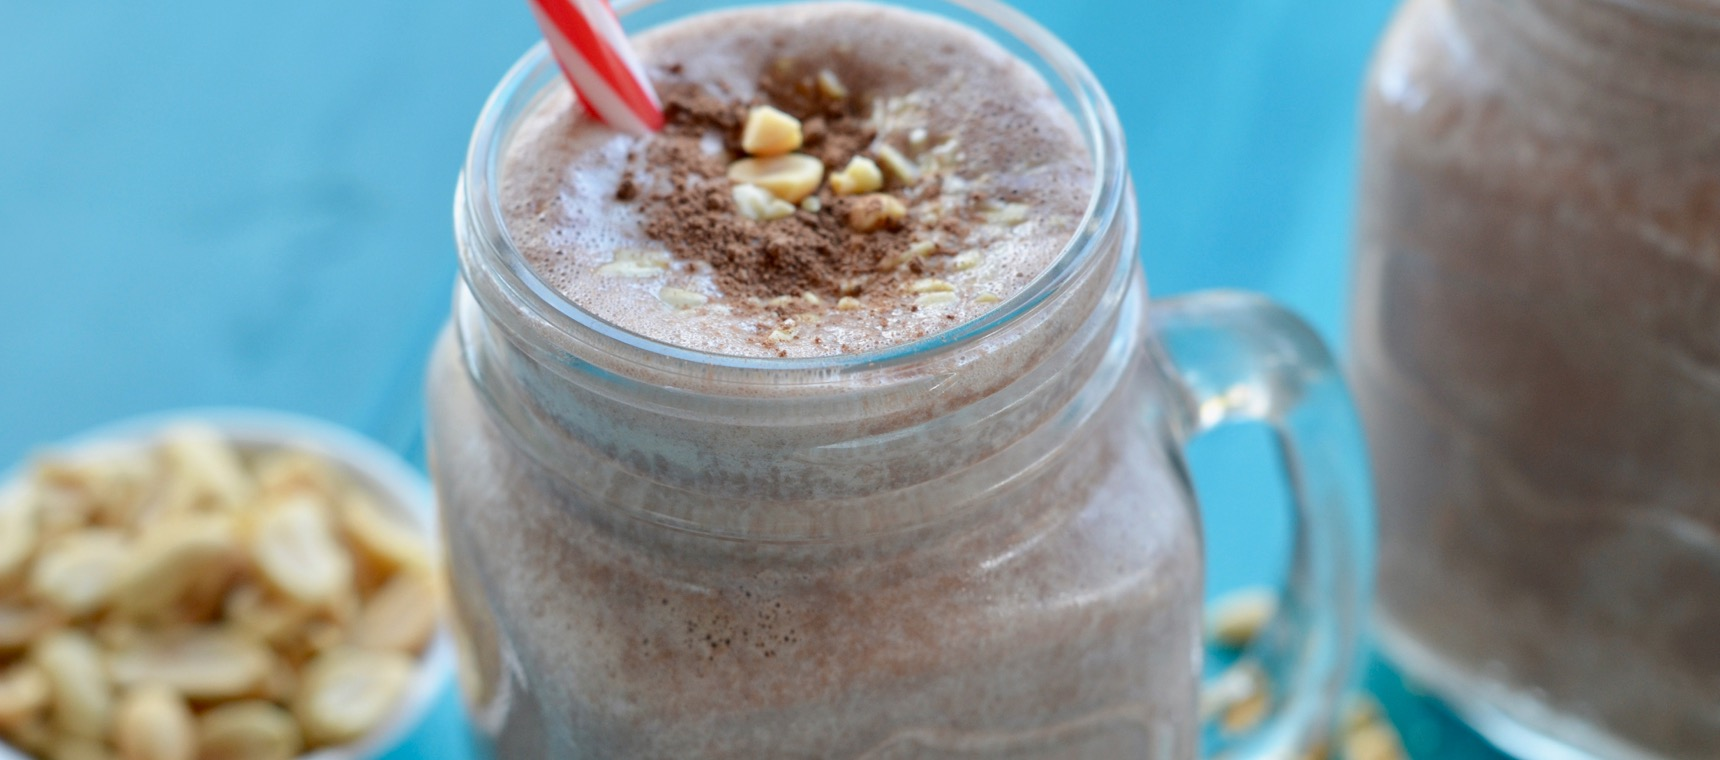 Snickerz Smoothie